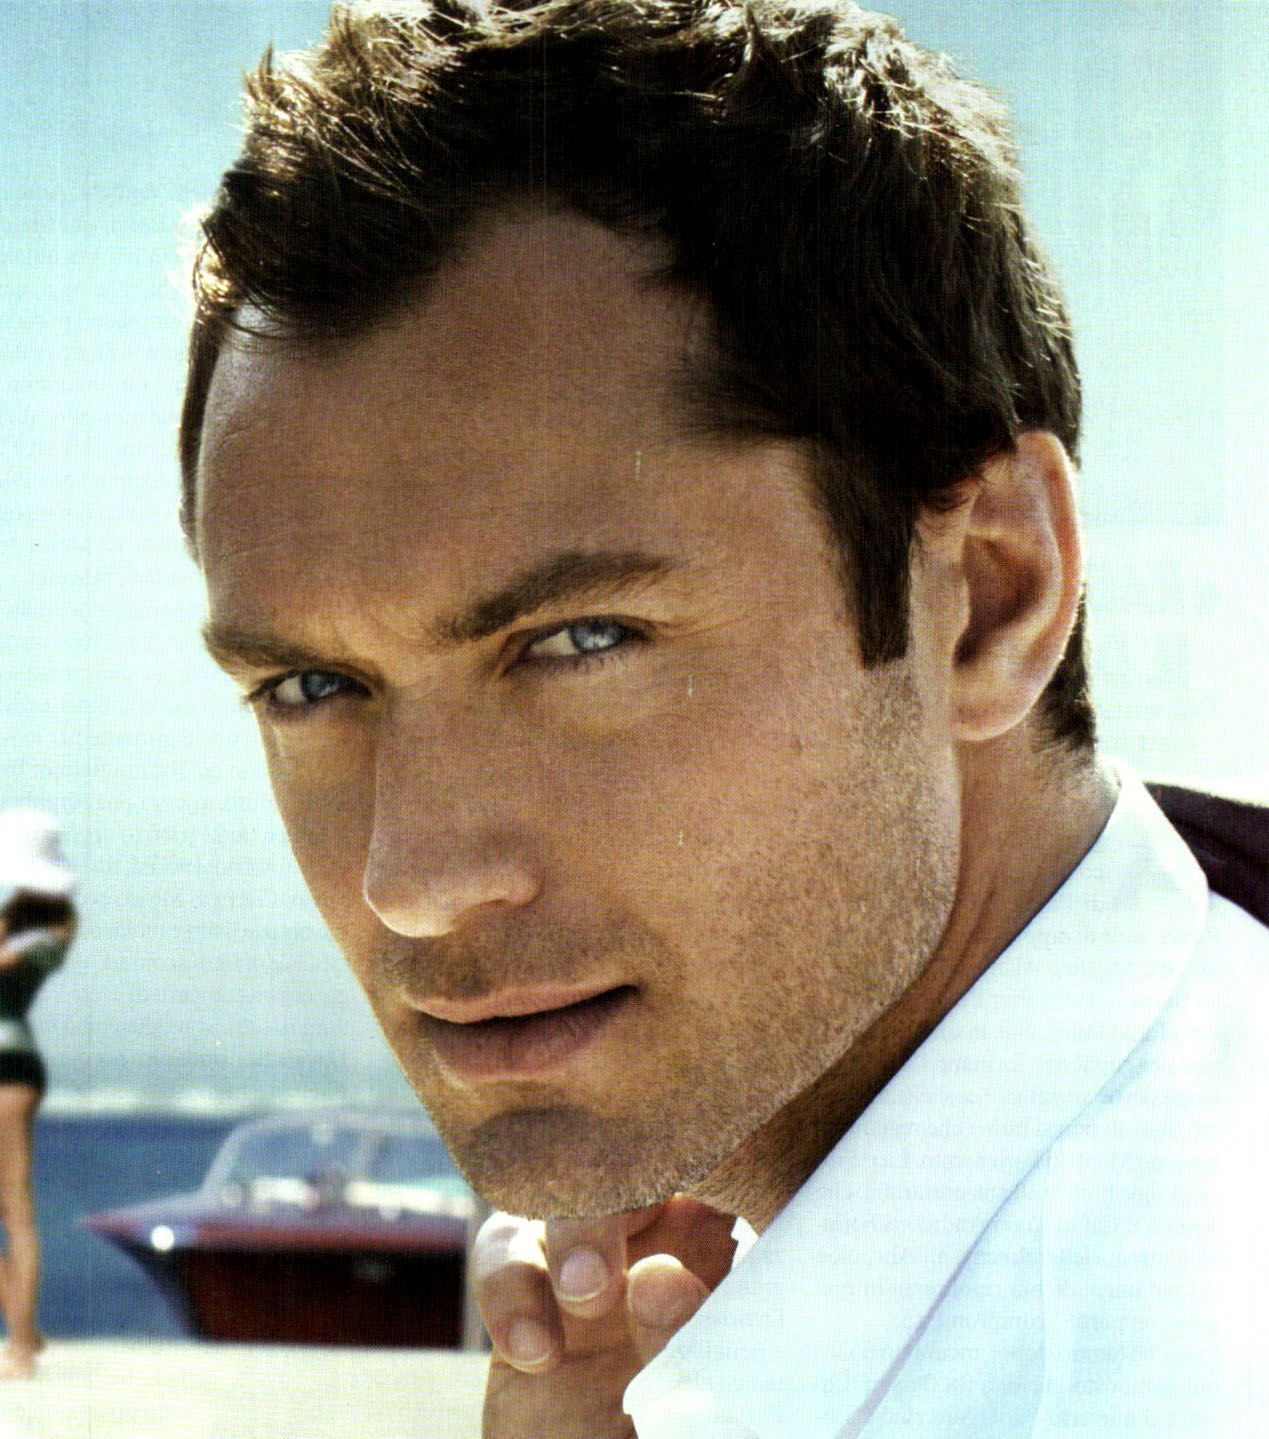 Jude Law pretty sure he is my celebrity crush. I would love to have a deep intimate conversation with him...